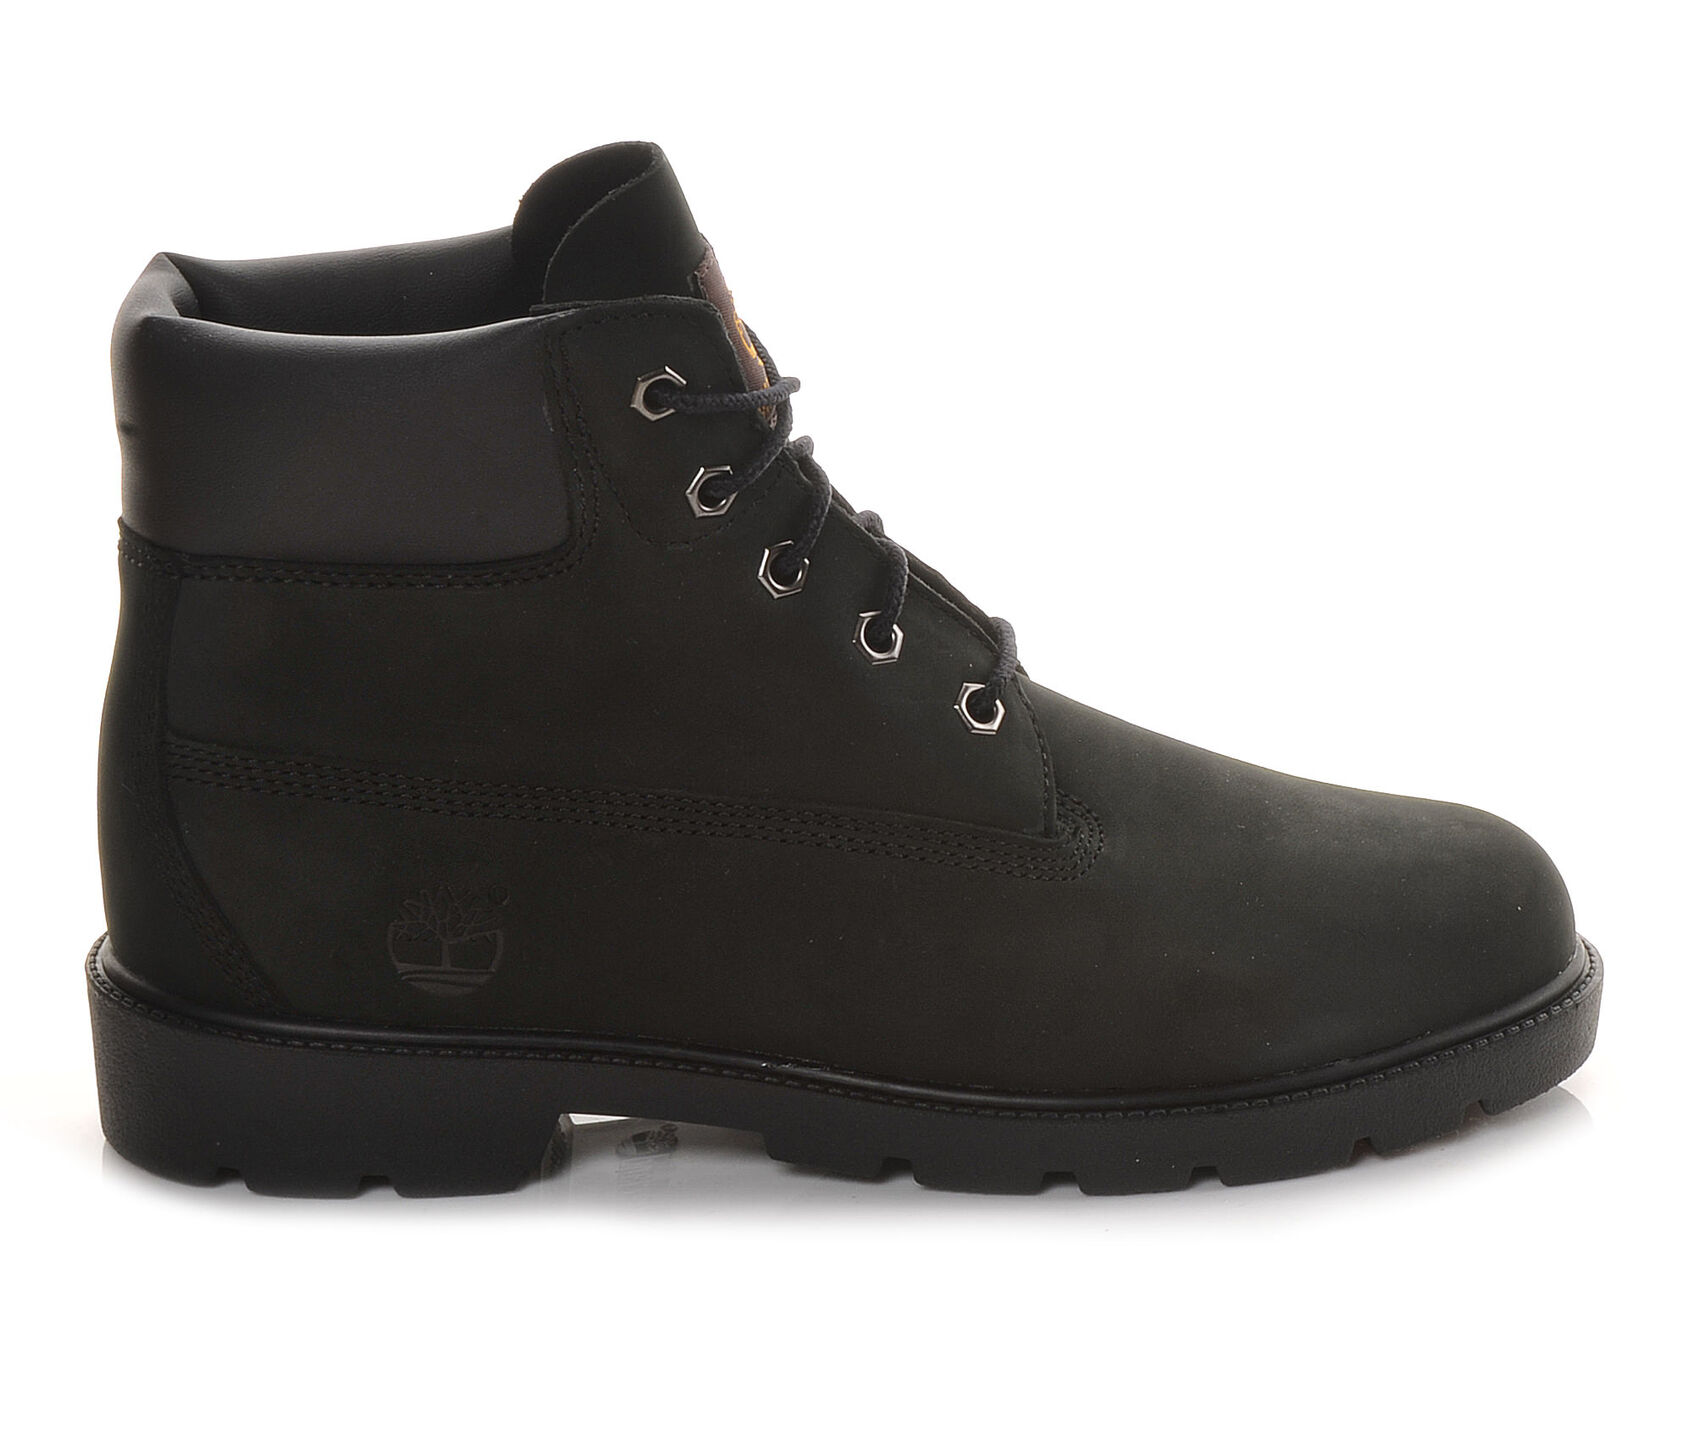 latest selection best selection of new styles Boys' Timberland Big Kid 10910 6 Inch Classic Boots